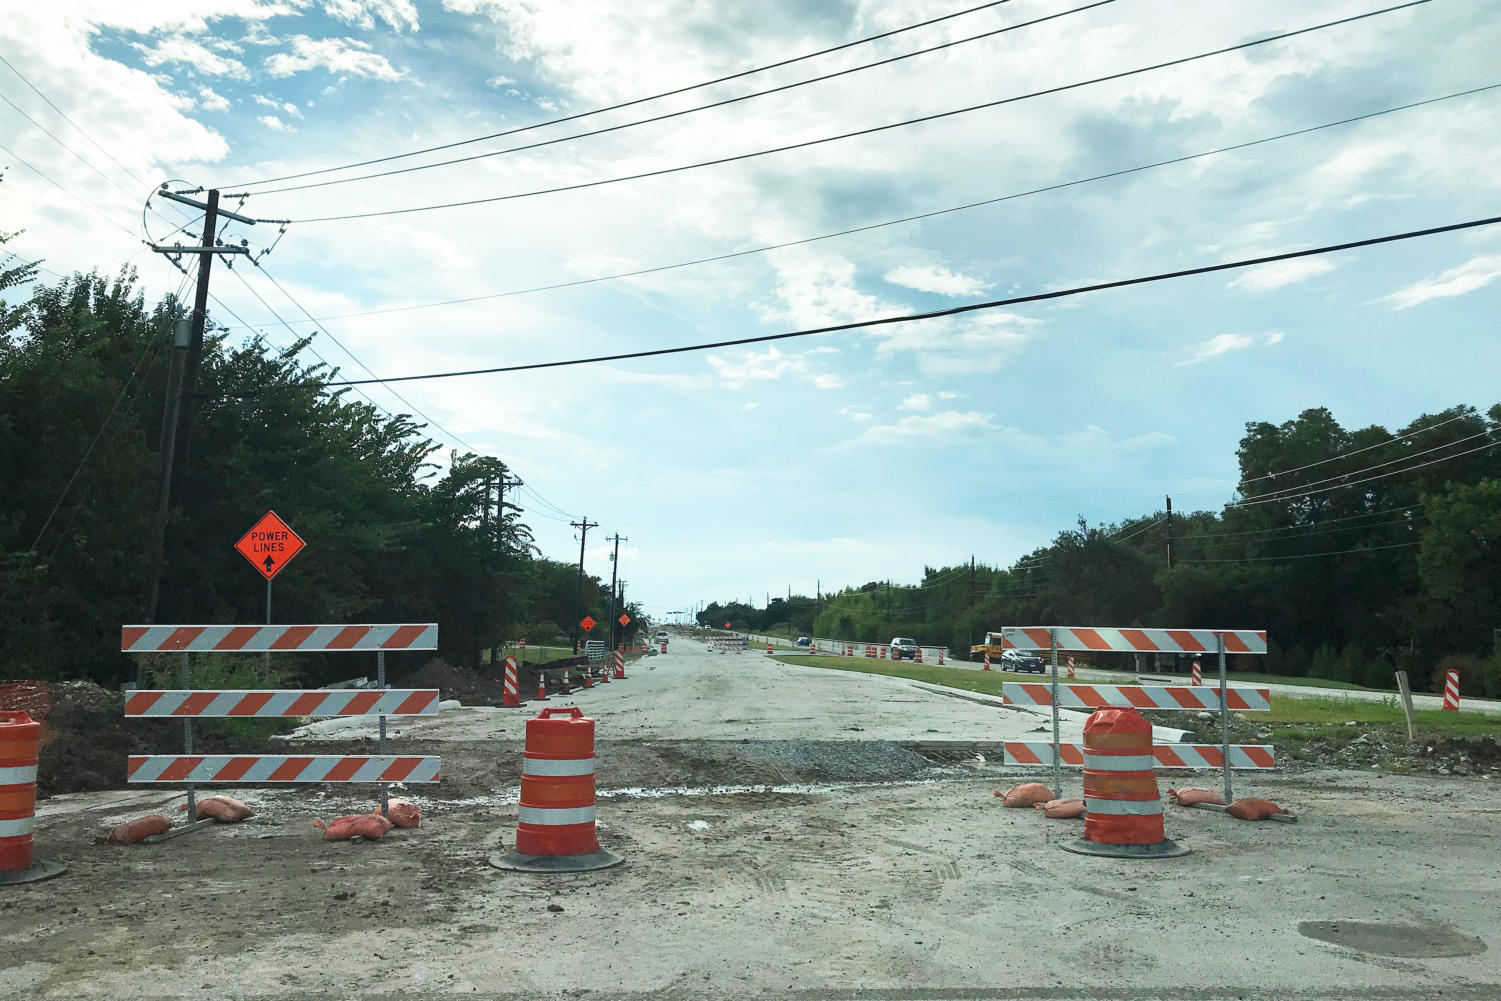 Stacy Road construction is set to finish early 2019 after trouble with sewer lines.